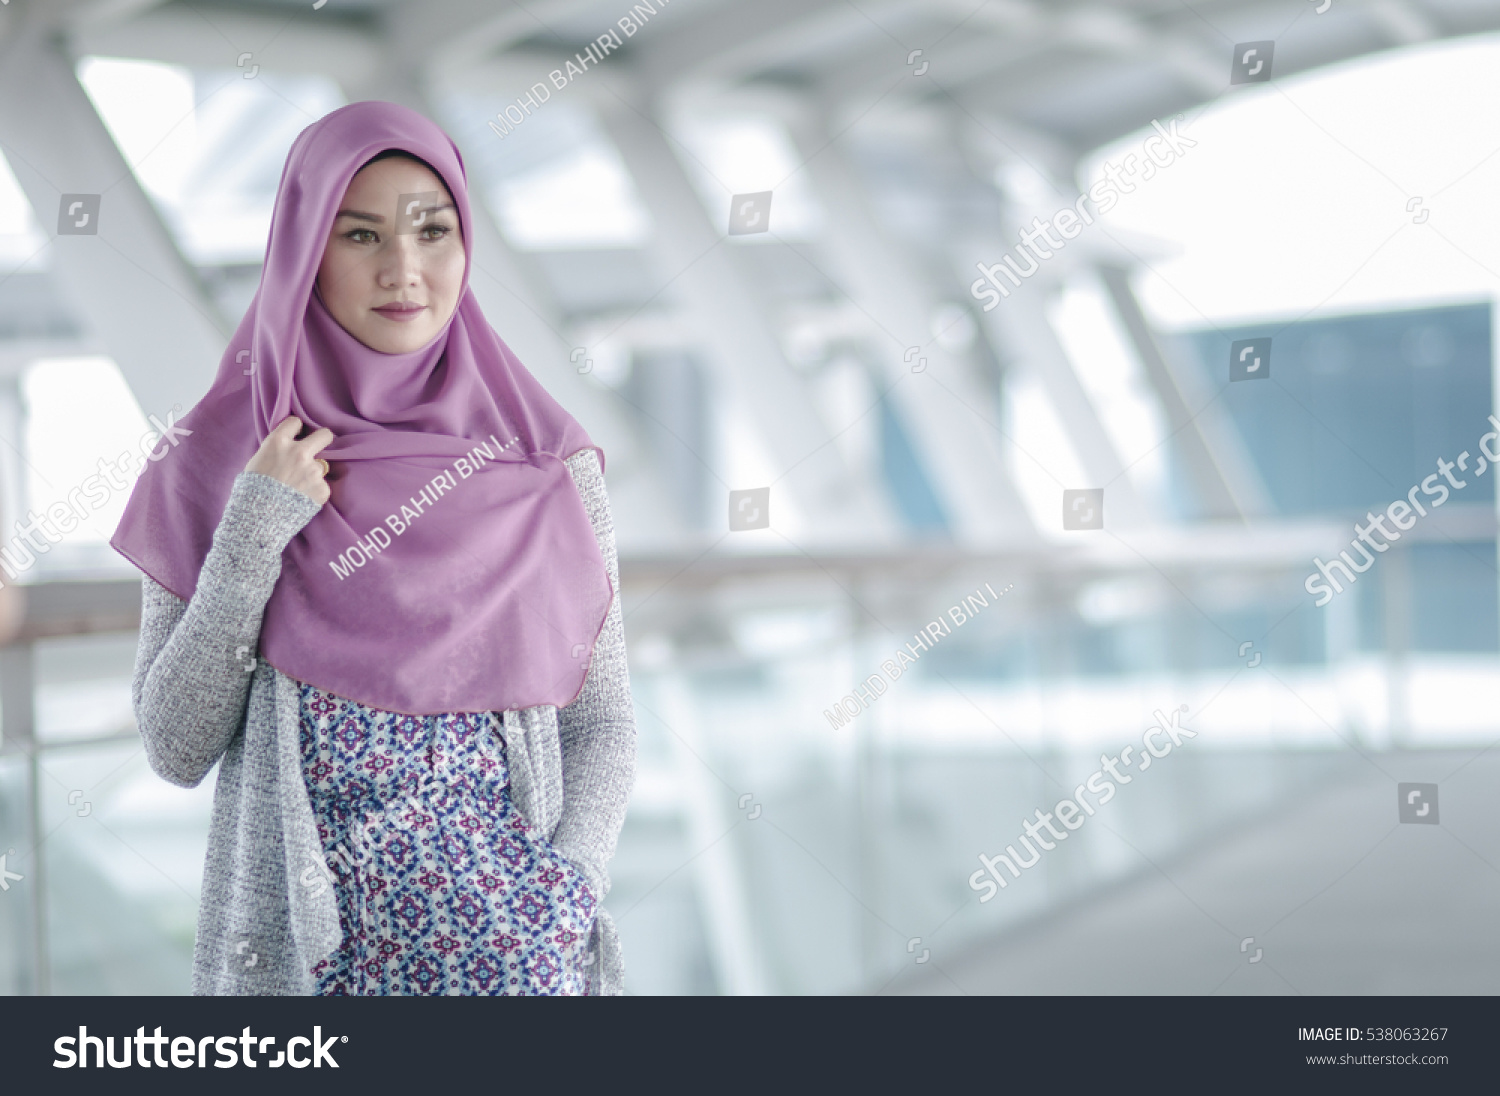 muslim singles in penns grove Meet buddhist singles in feasterville trevose are you hoping to meet the buddhist single person of your dreams or would you simply like someone new to go with wine tasting at the local wine bar tonight.